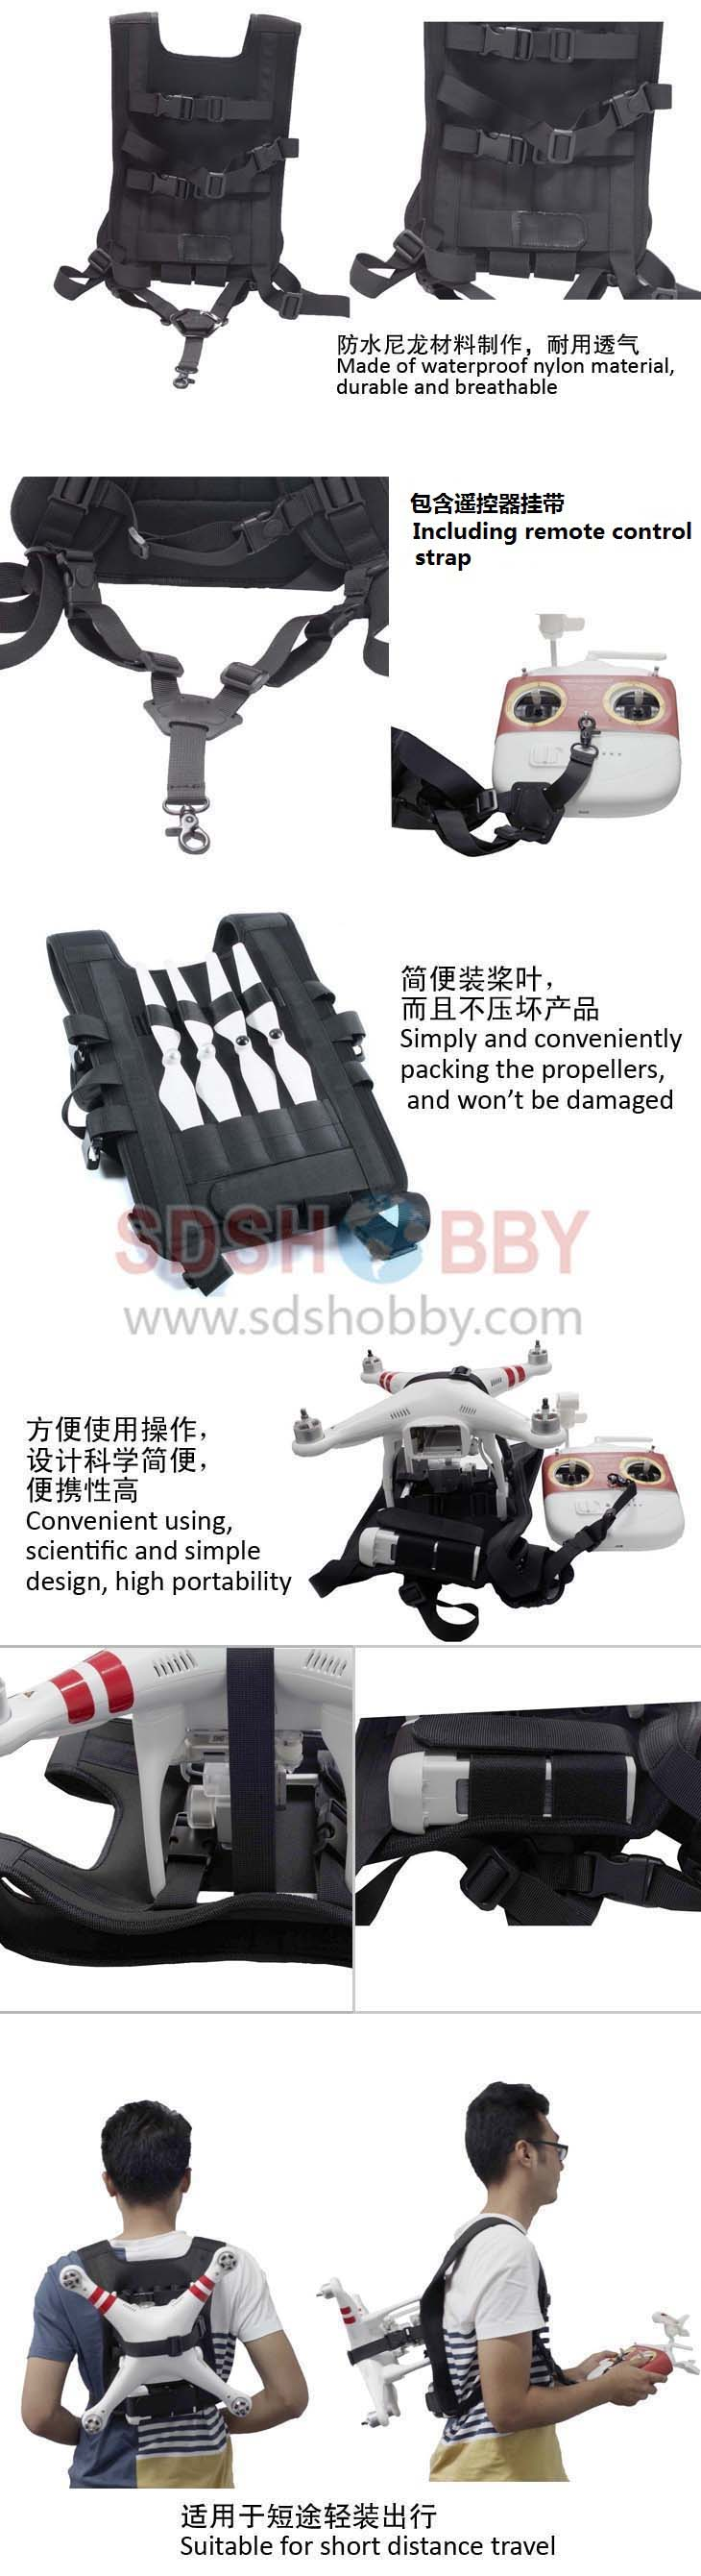 Shoulder Strap Harness Portable Backpack for Travelling/ Adventure / Athletics for DJI Phantom 2/ 3/ 4 pro+